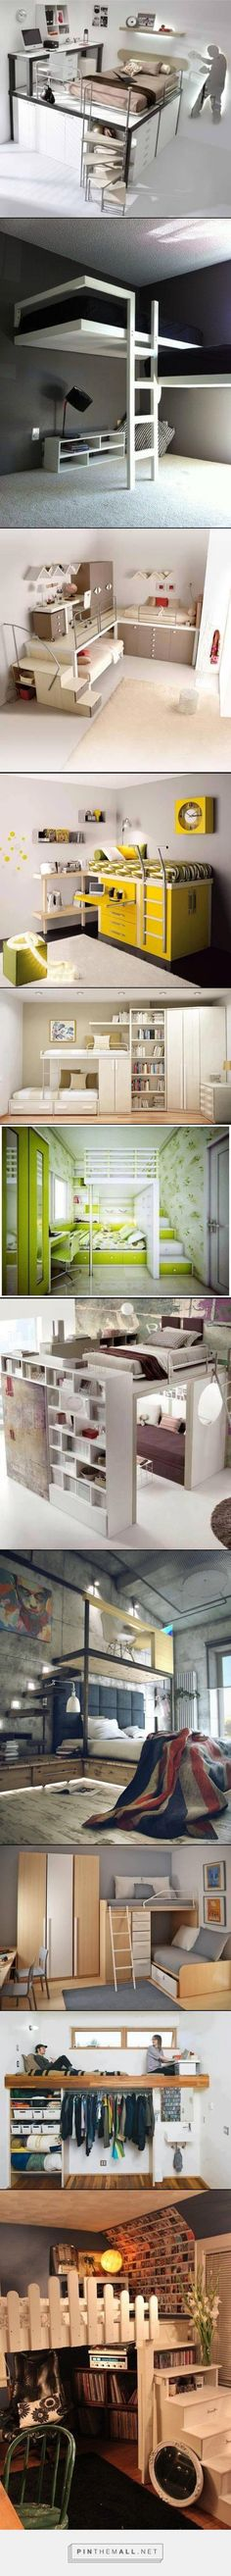 Bunk ideas